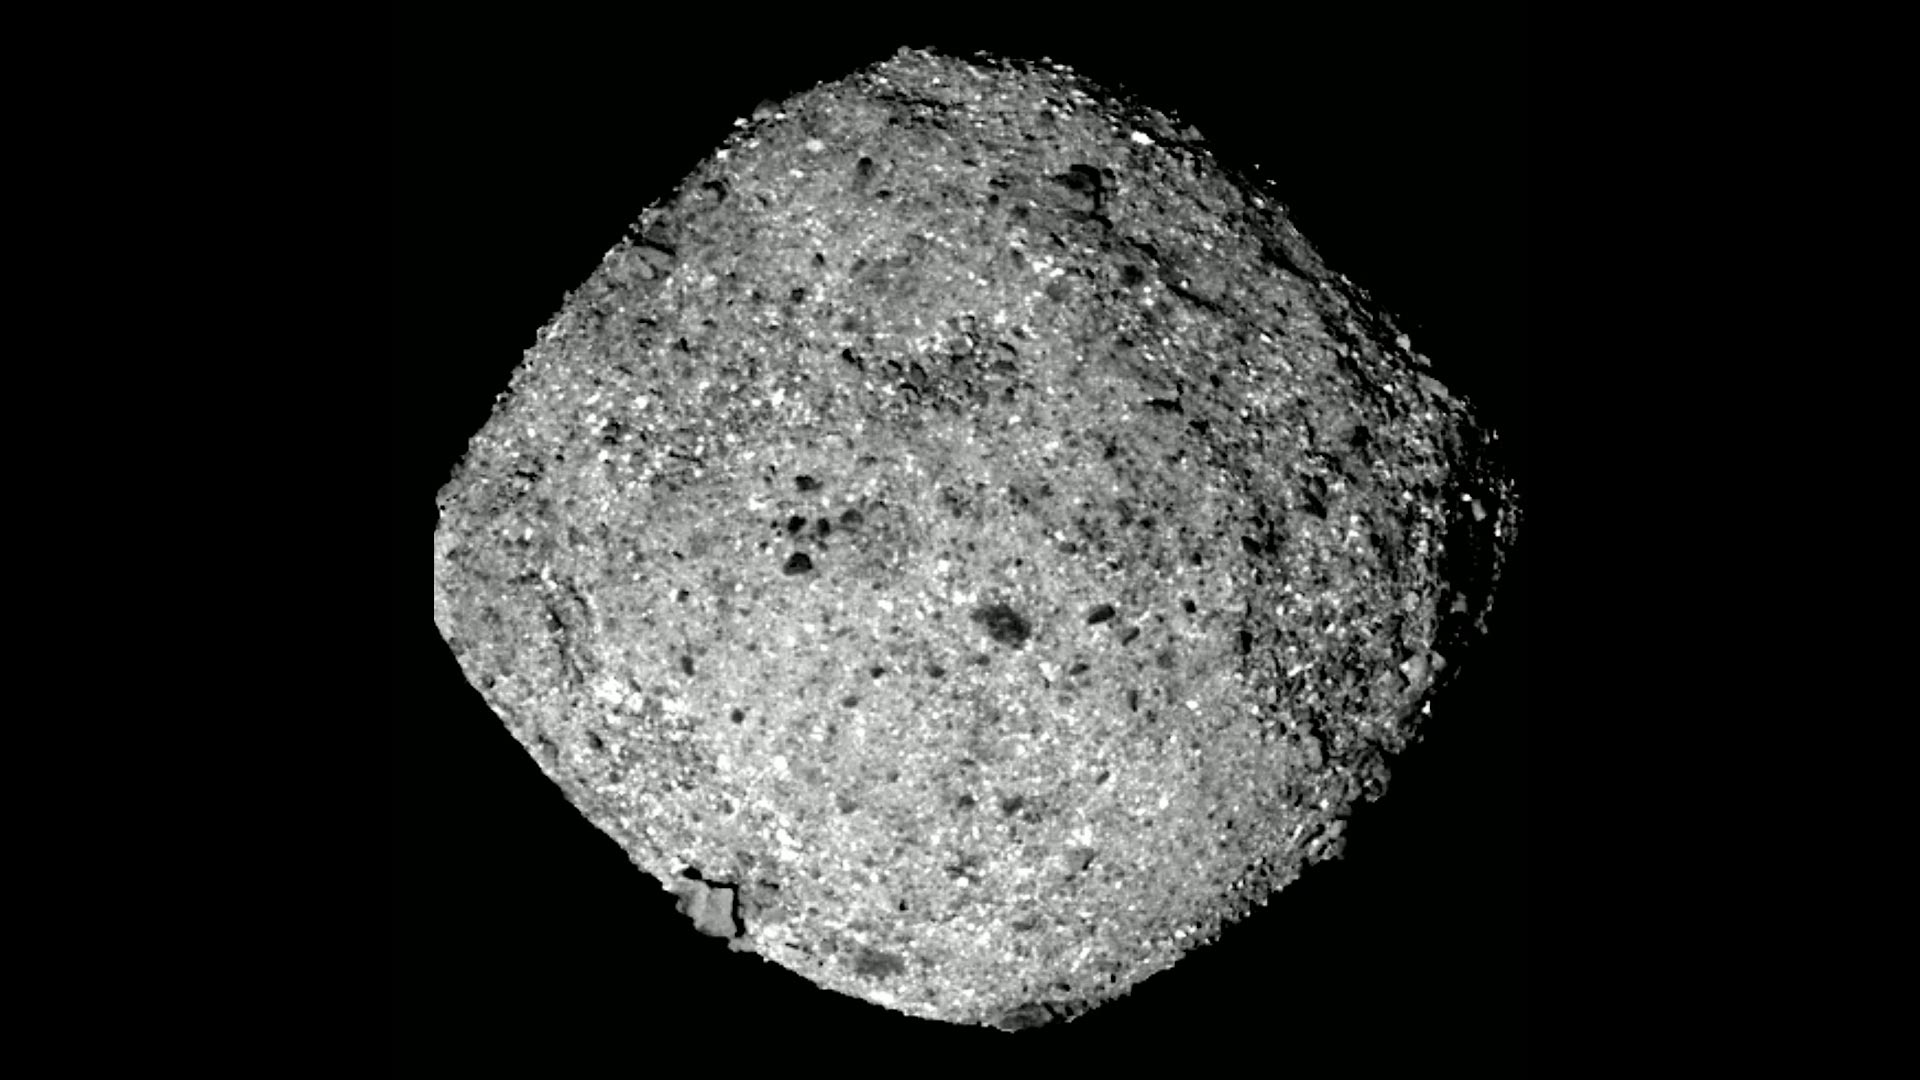 An image of the asteroid Bennu photographed by the OSIRIS-REx spacecraft.